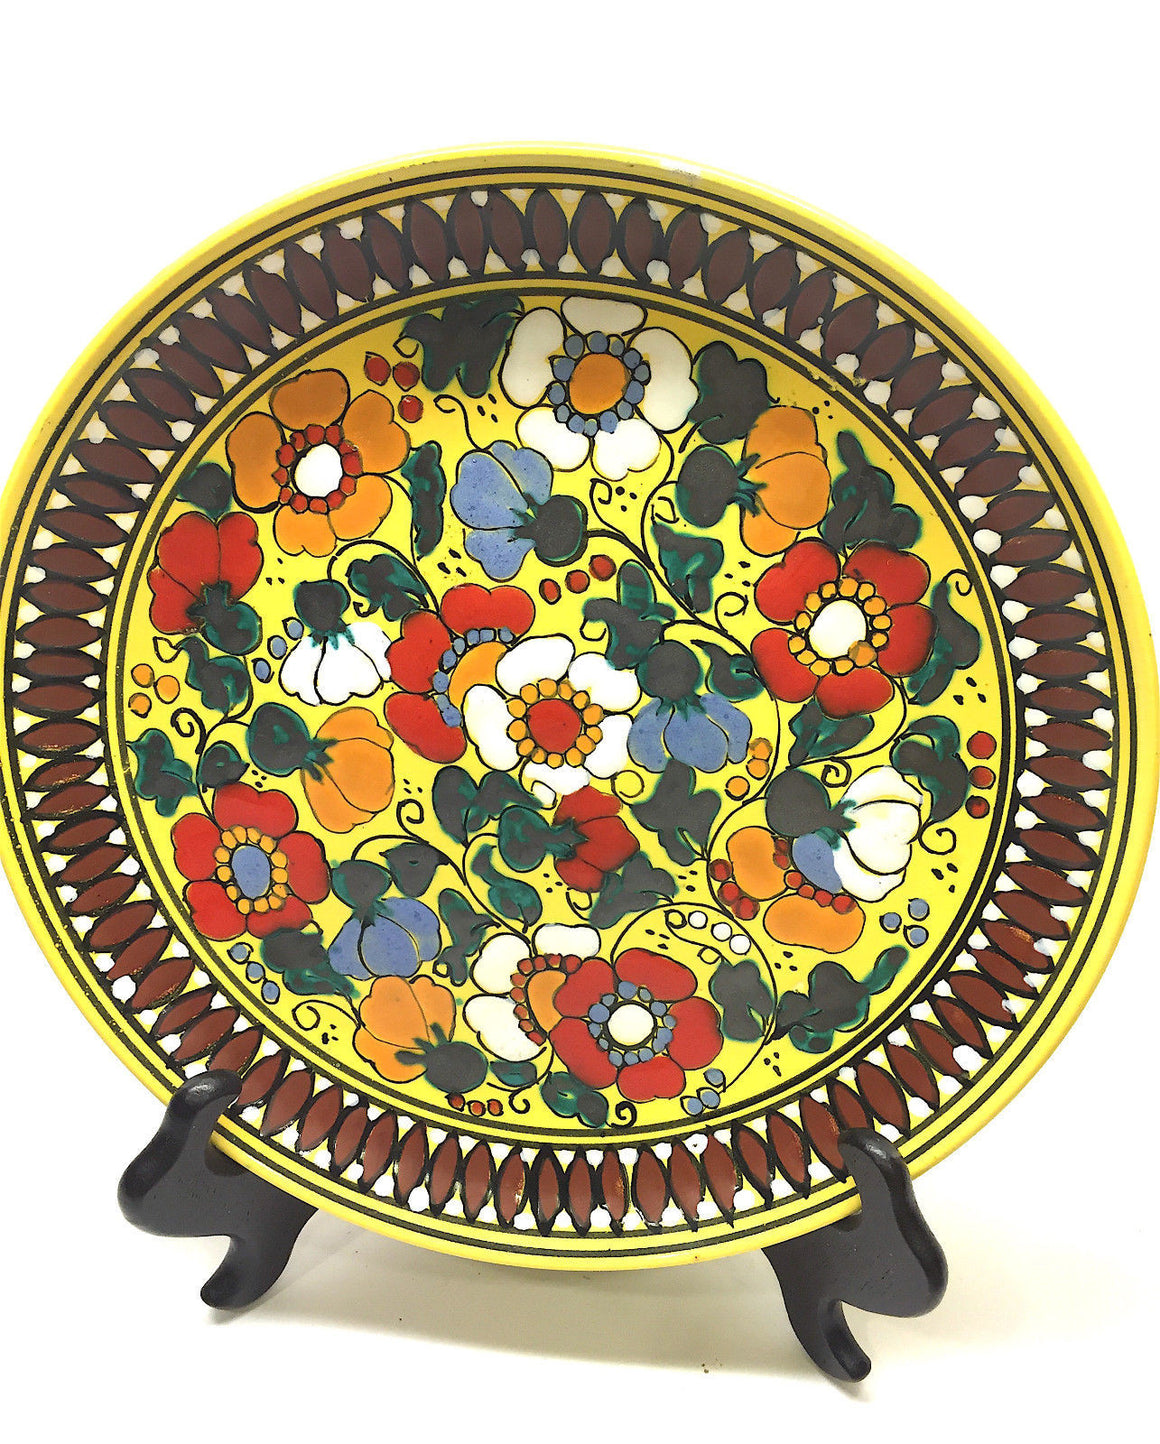 bisbiz.com CERAMICA BARILOCHE Vintage Set of 2 Hand-Painted Floral-Motif Decorative Plates - Bis Luxury Resale